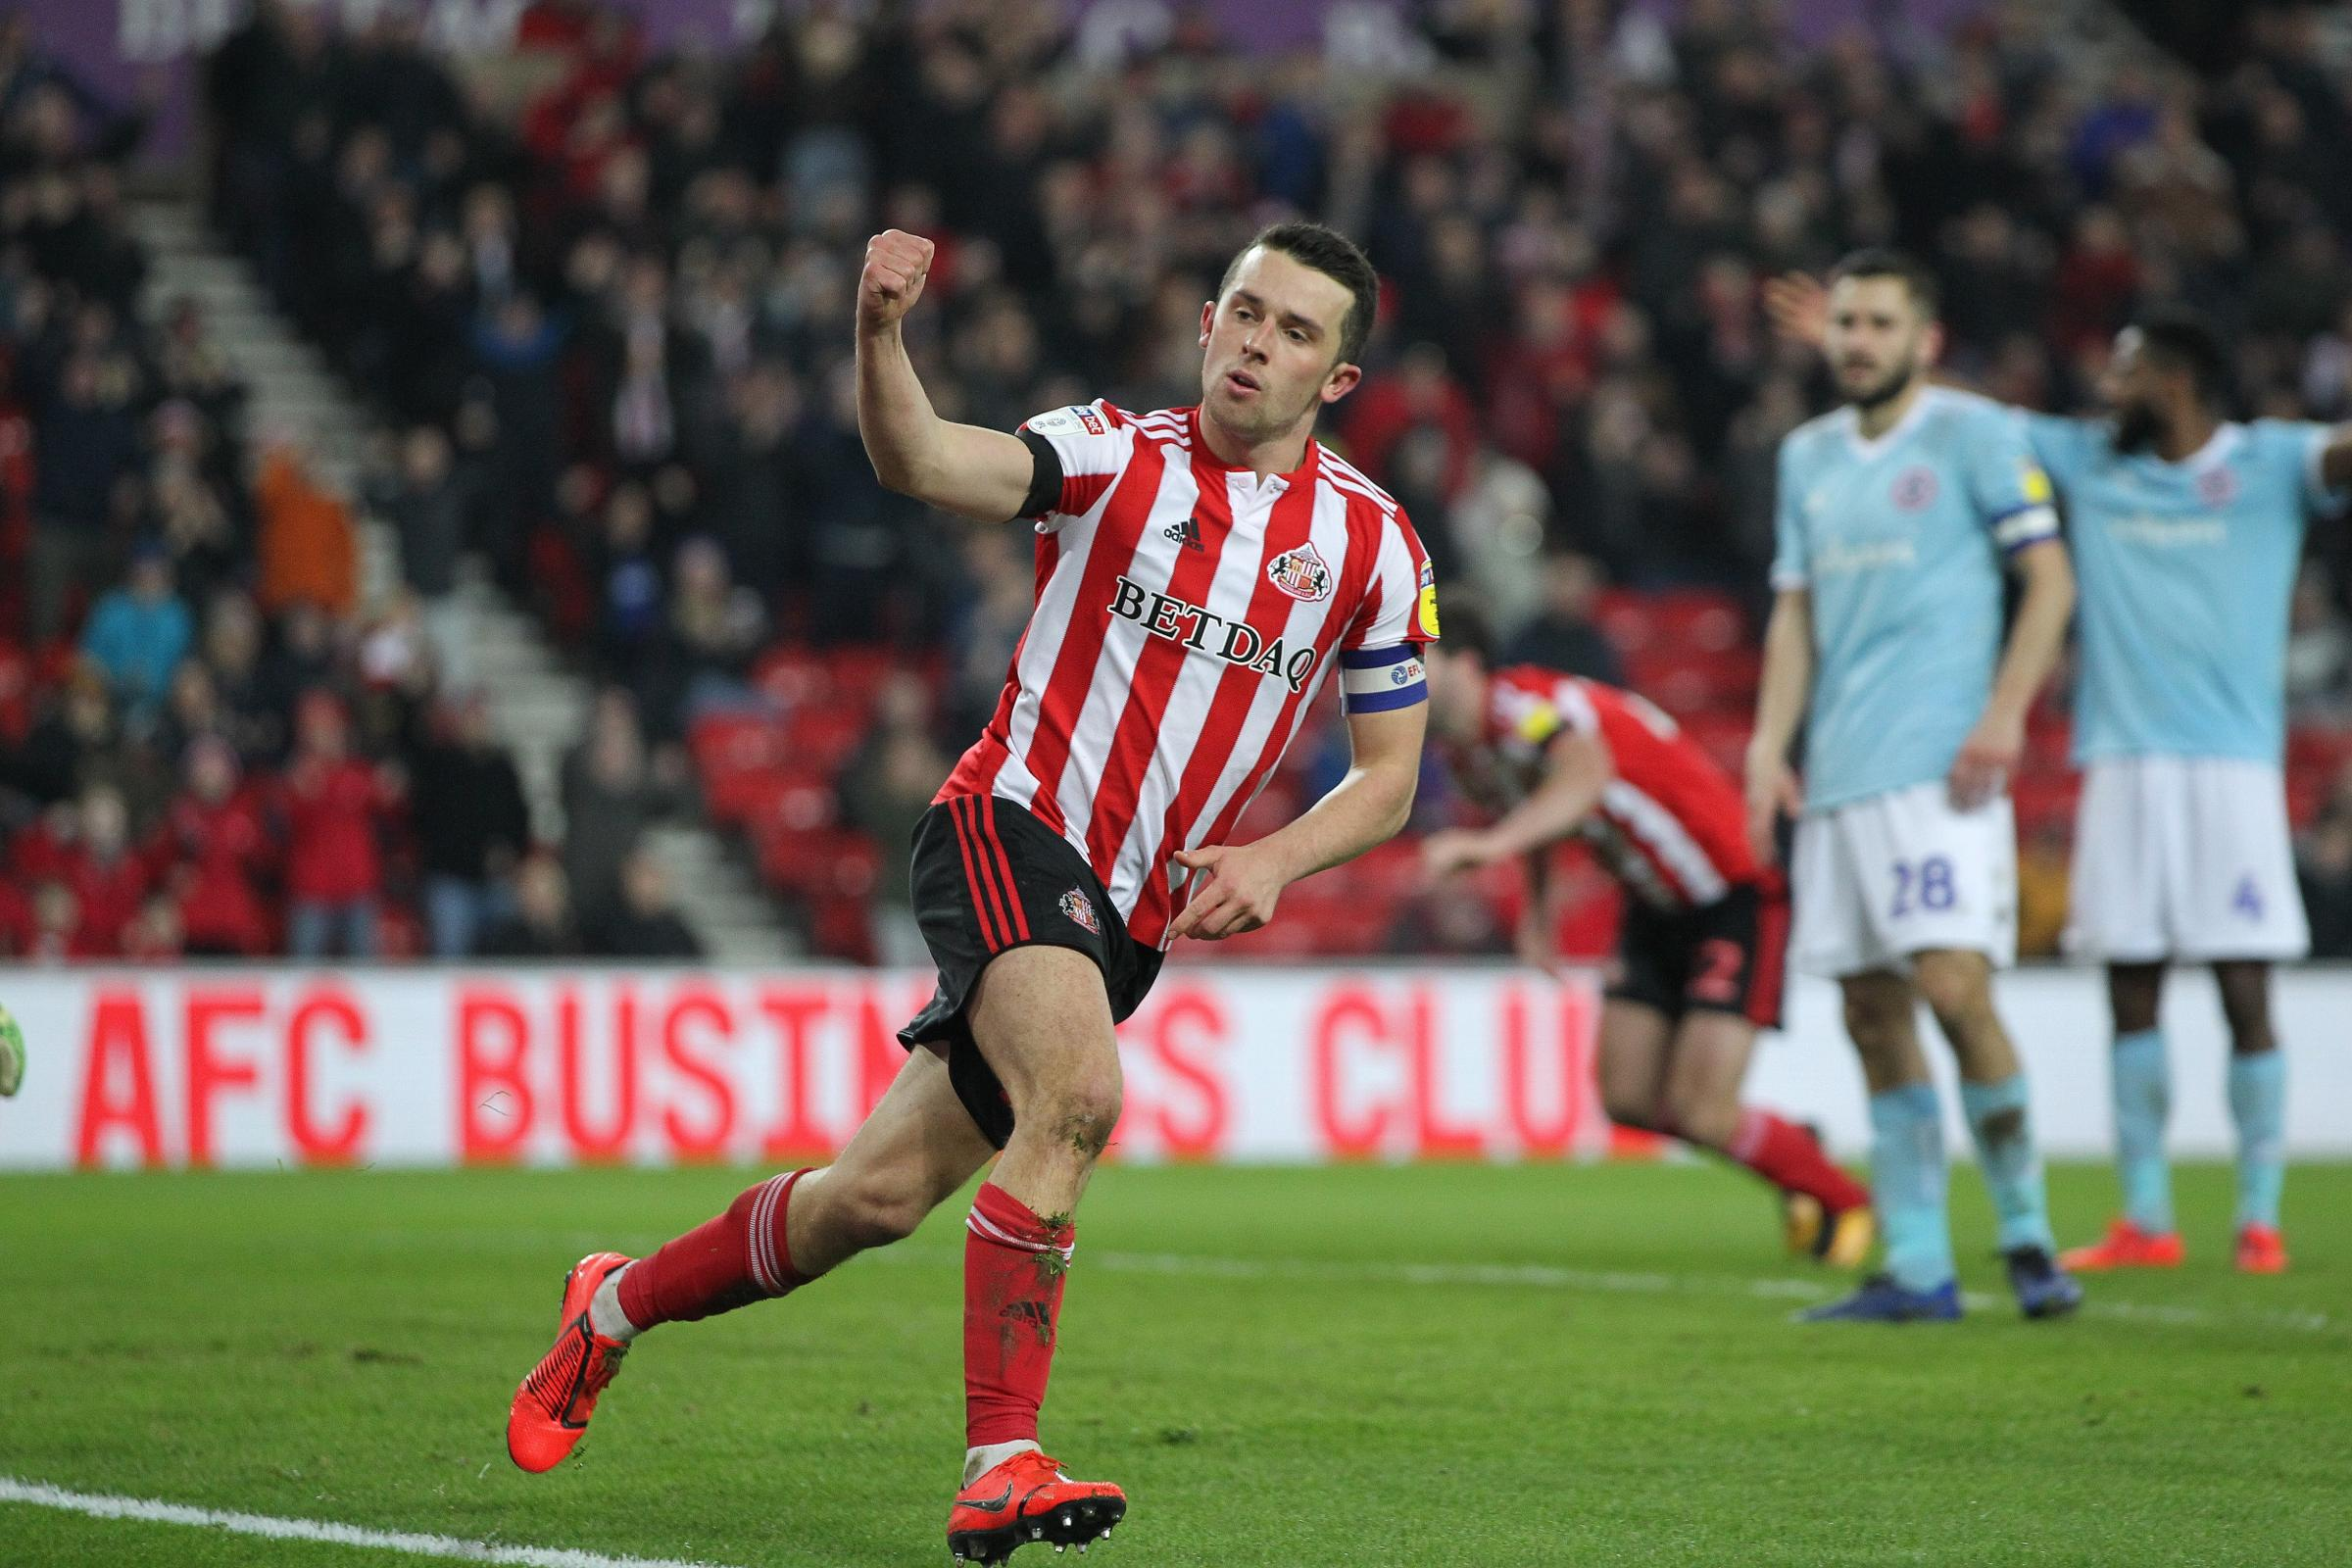 SUNDERLAND, UK. 15TH FEBRUARY George Honeyman of Sunderland celebrates after scoring their first goal  during the Sky Bet League 1 match between Sunderland and Accrington Stanley at the Stadium Of Light, Sunderland on Friday 15th February 2019. (Credit: M